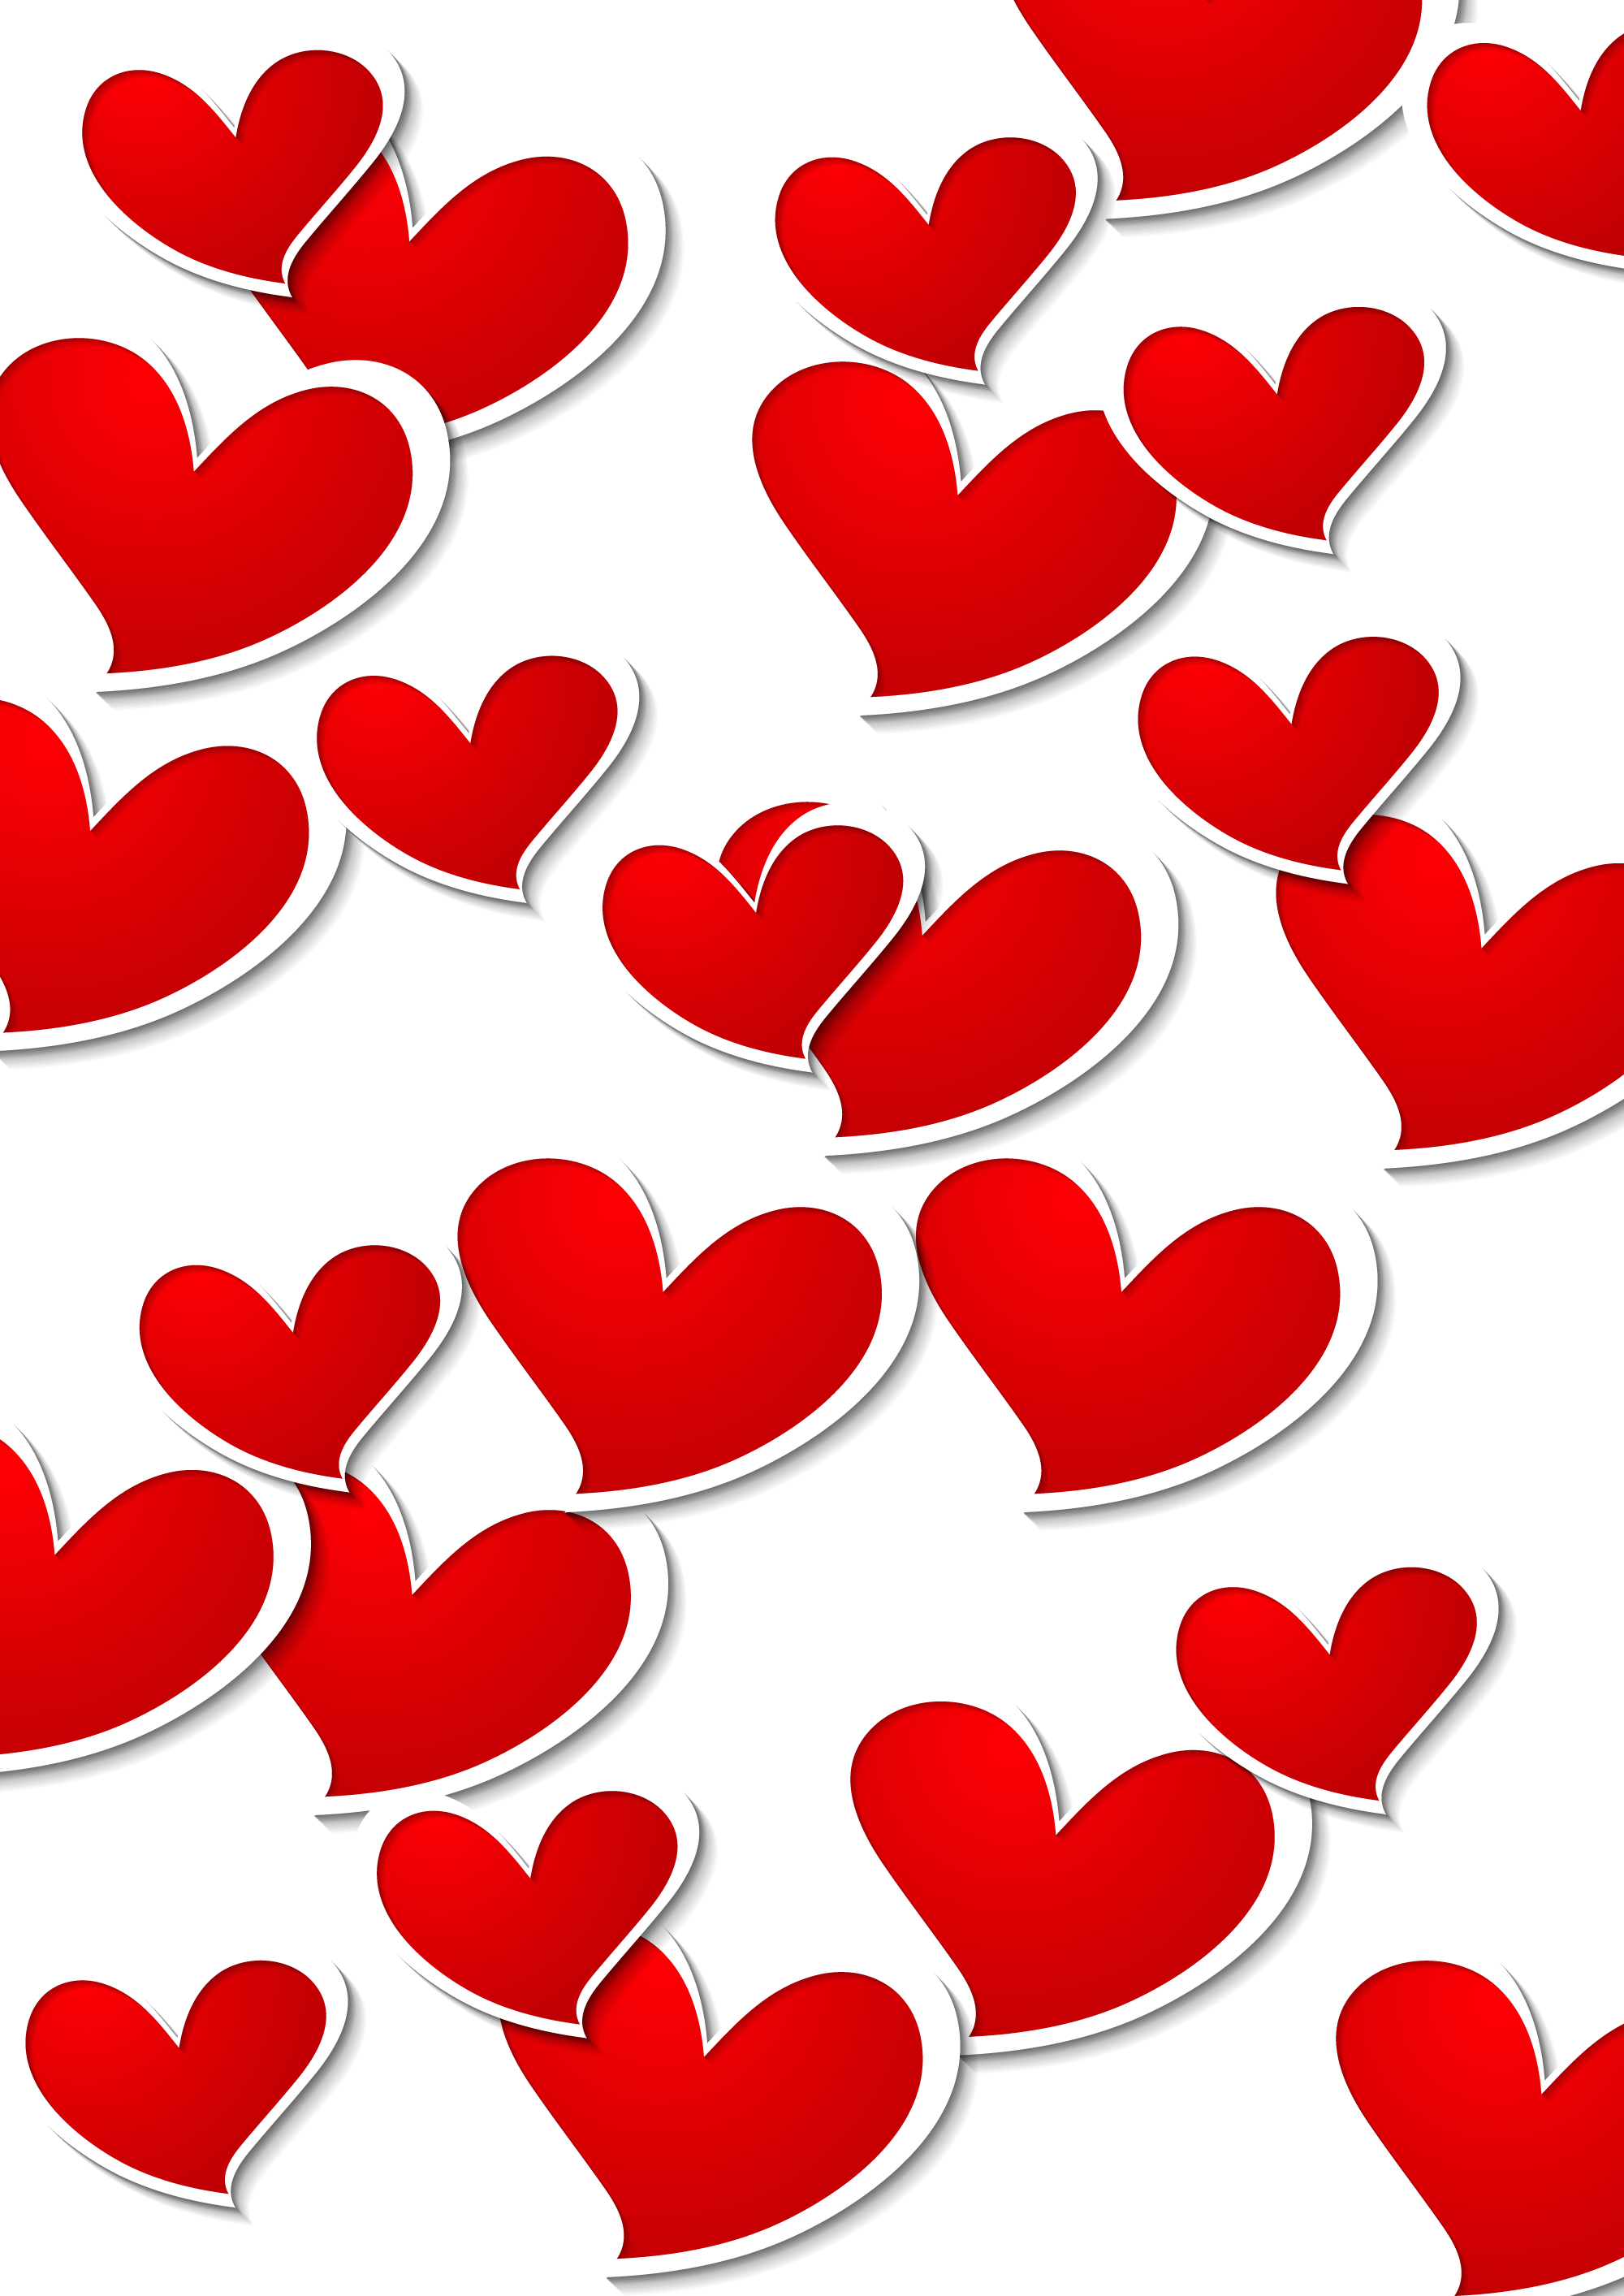 Cross hooks clipart banner black and white stock Transparent Red White Hearts Decorative PNG Picture Clipar ... banner black and white stock